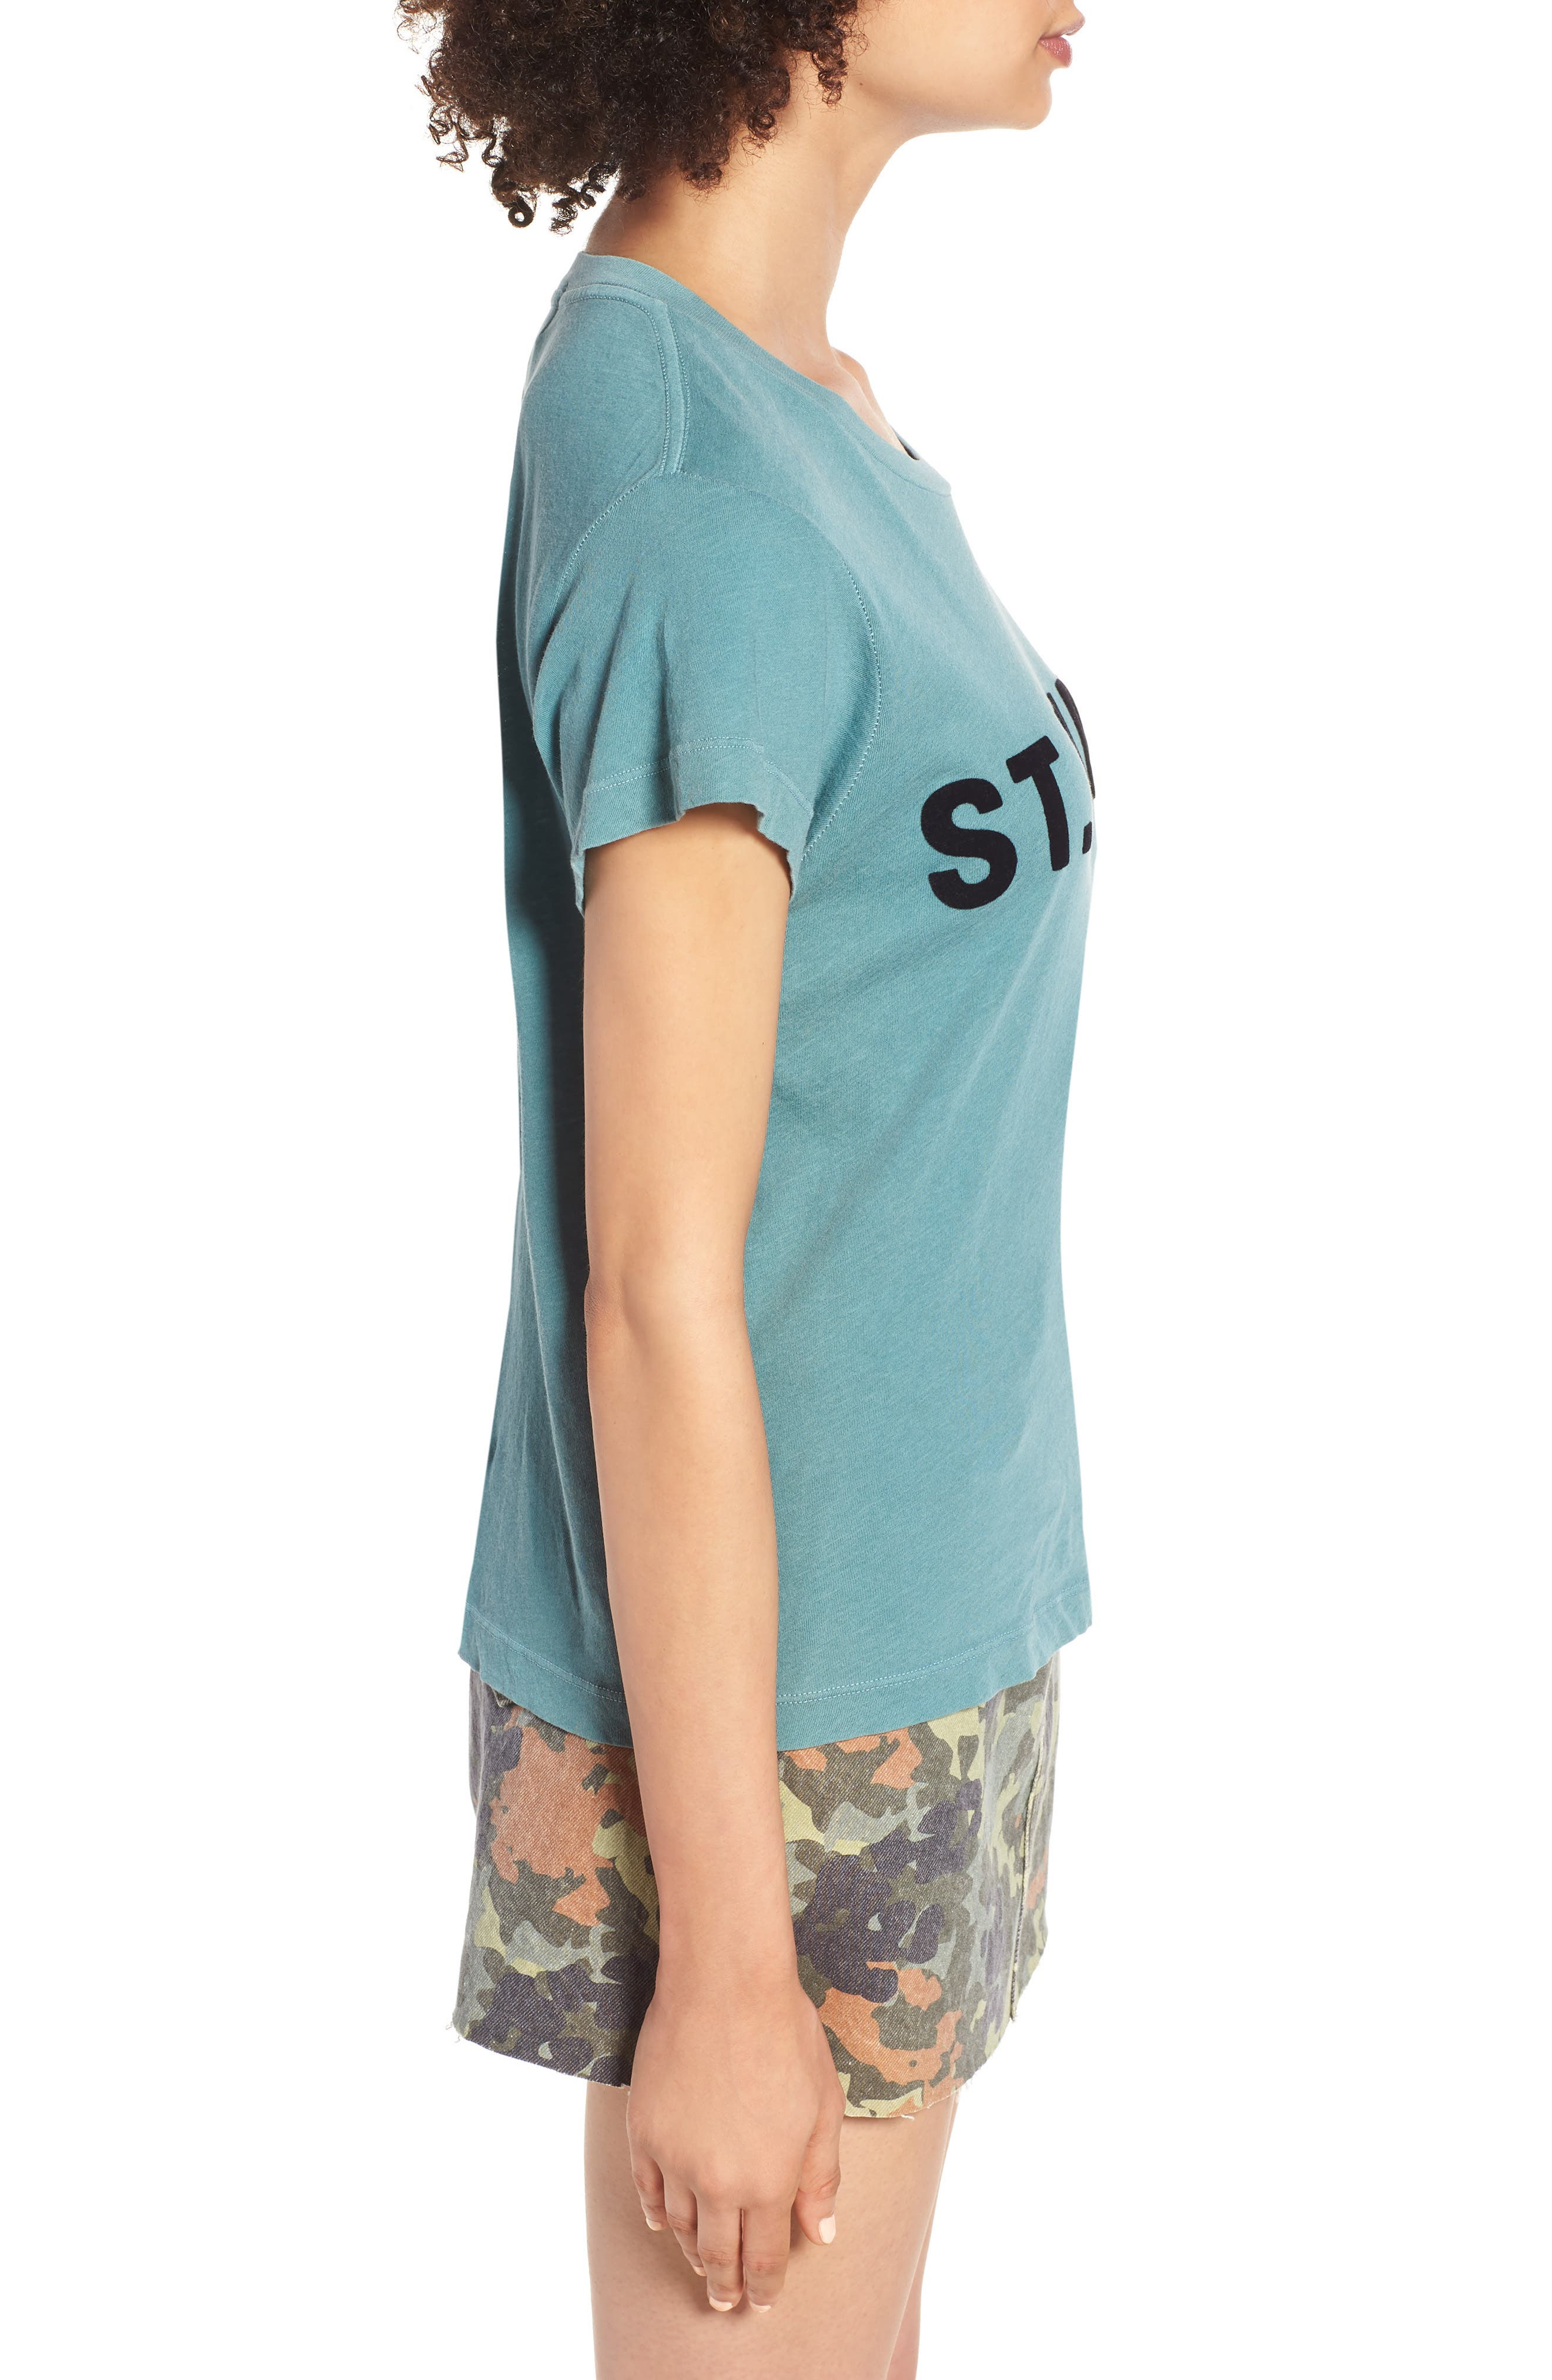 St. Barts Tee,                             Alternate thumbnail 3, color,                             PIGMENT GREEN TROPICS